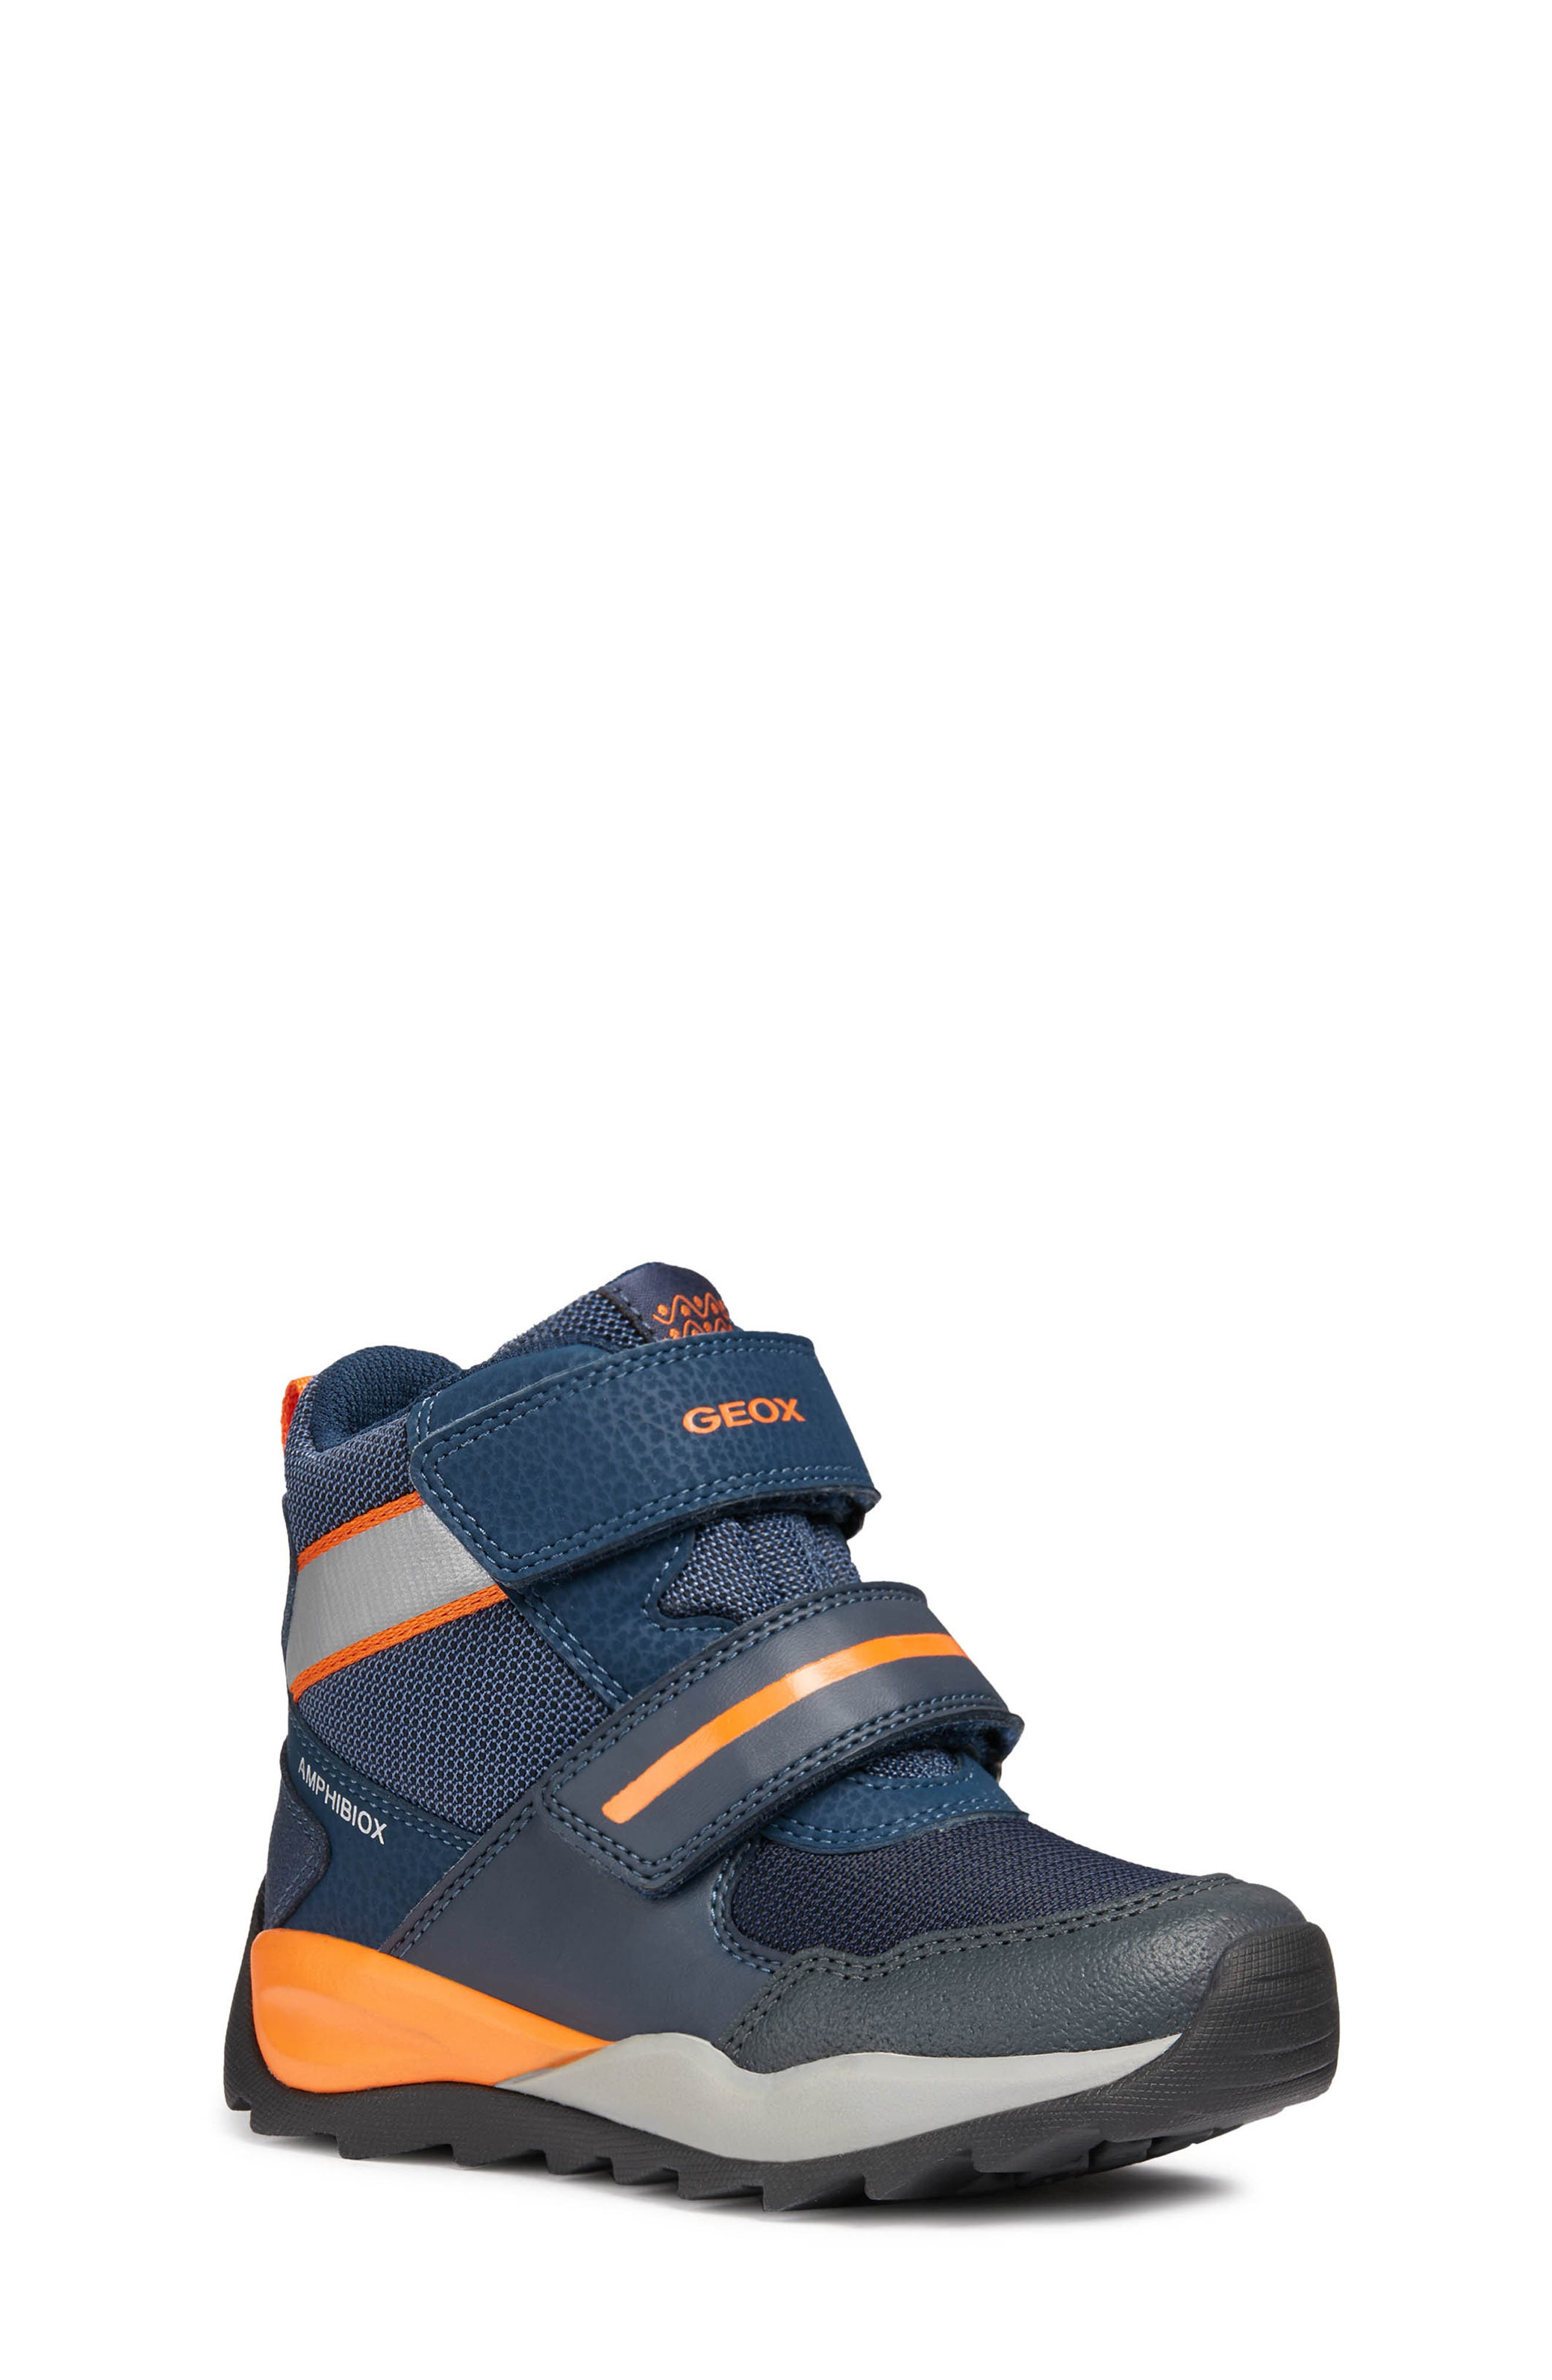 GEOX SPORT RESPIRA Light Up Boys Sneakers Shoes Size 30 Us 12